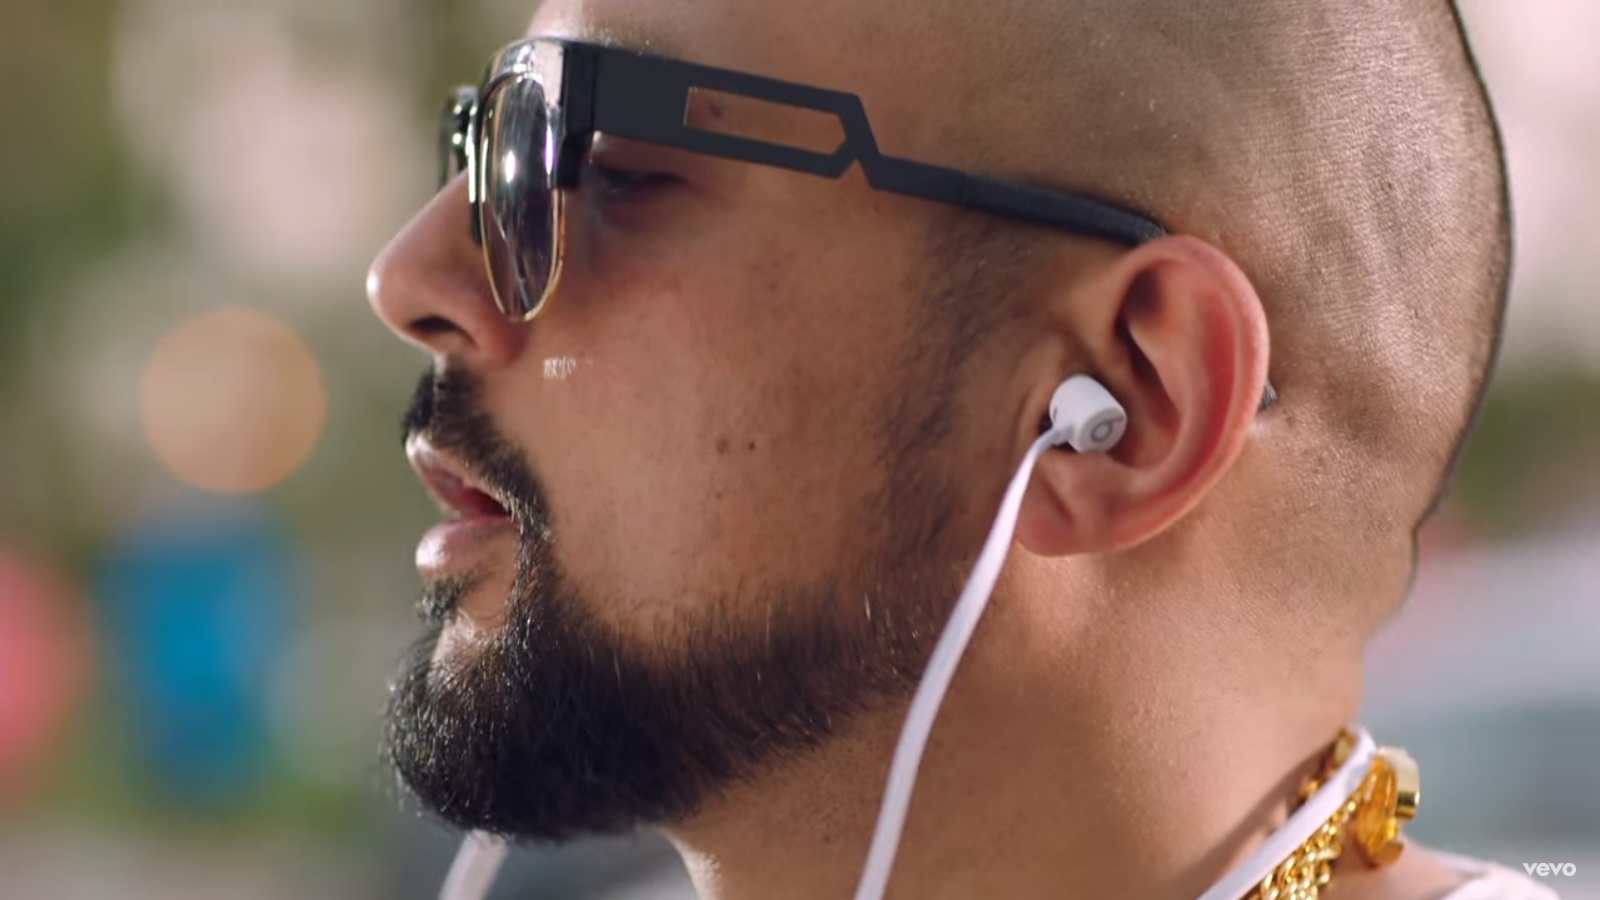 Beats Earphones - Sean Paul - Body ft. Migos Official Music Video Product Placement